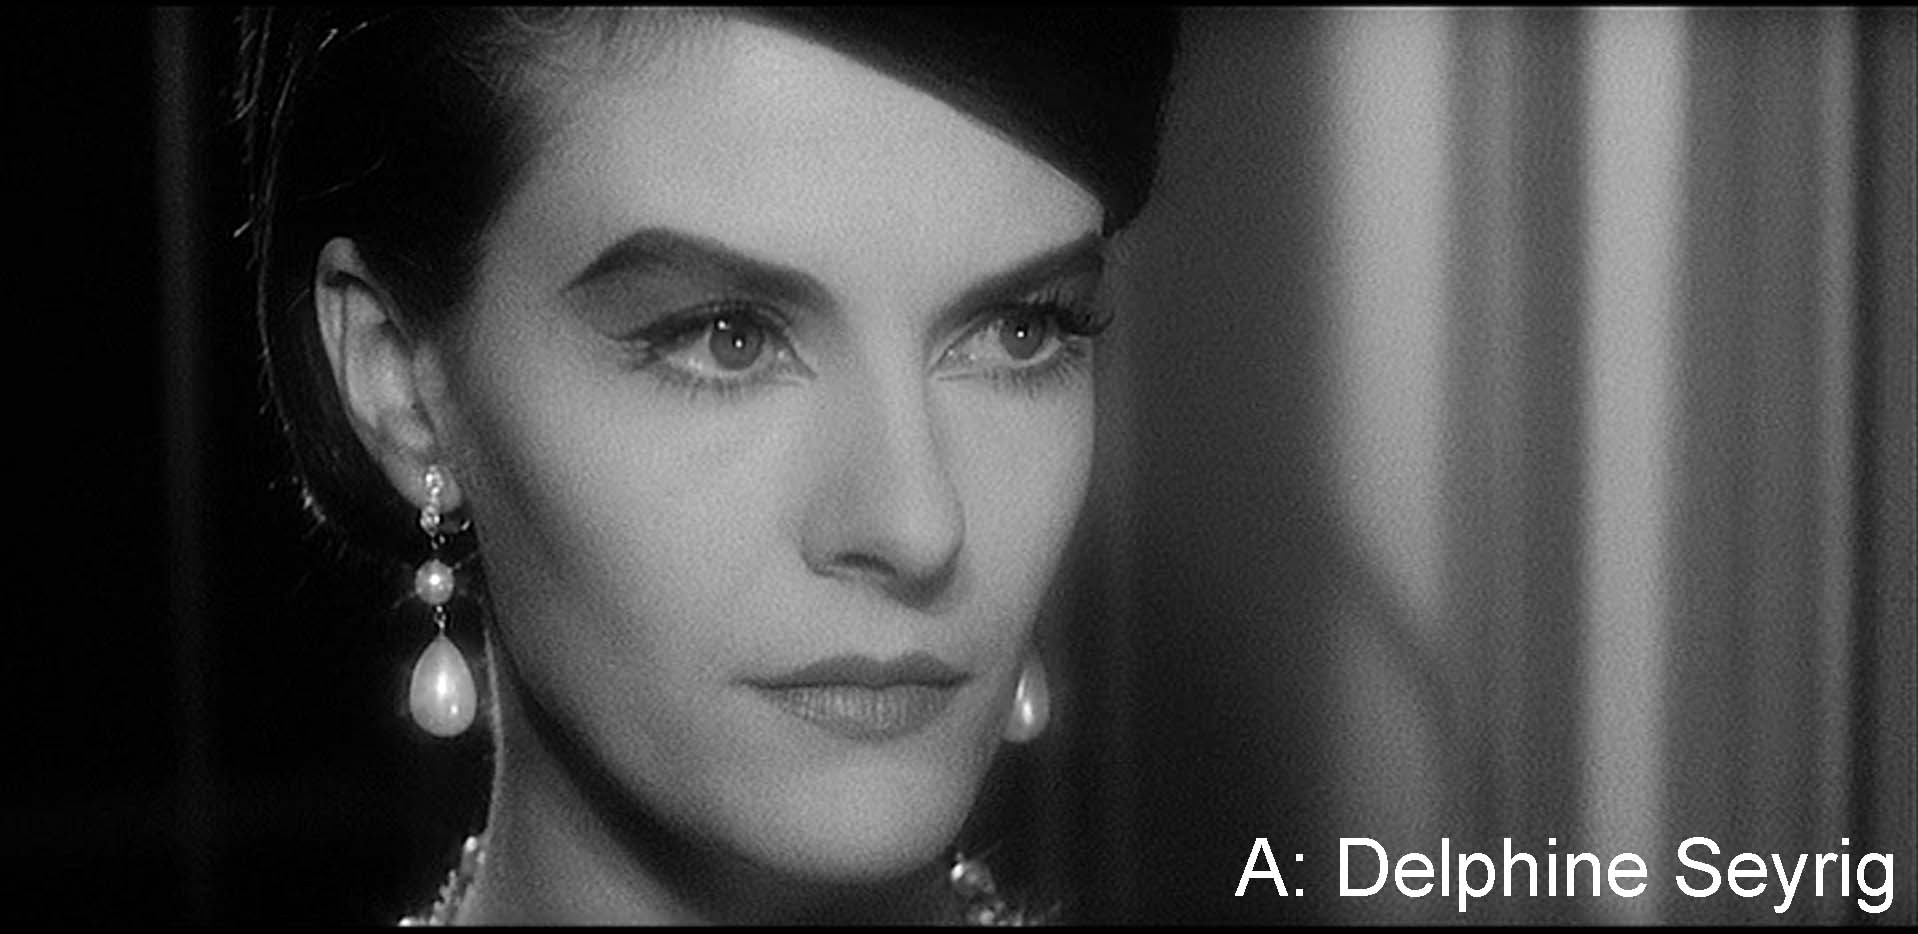 A: Delphine Seyrig